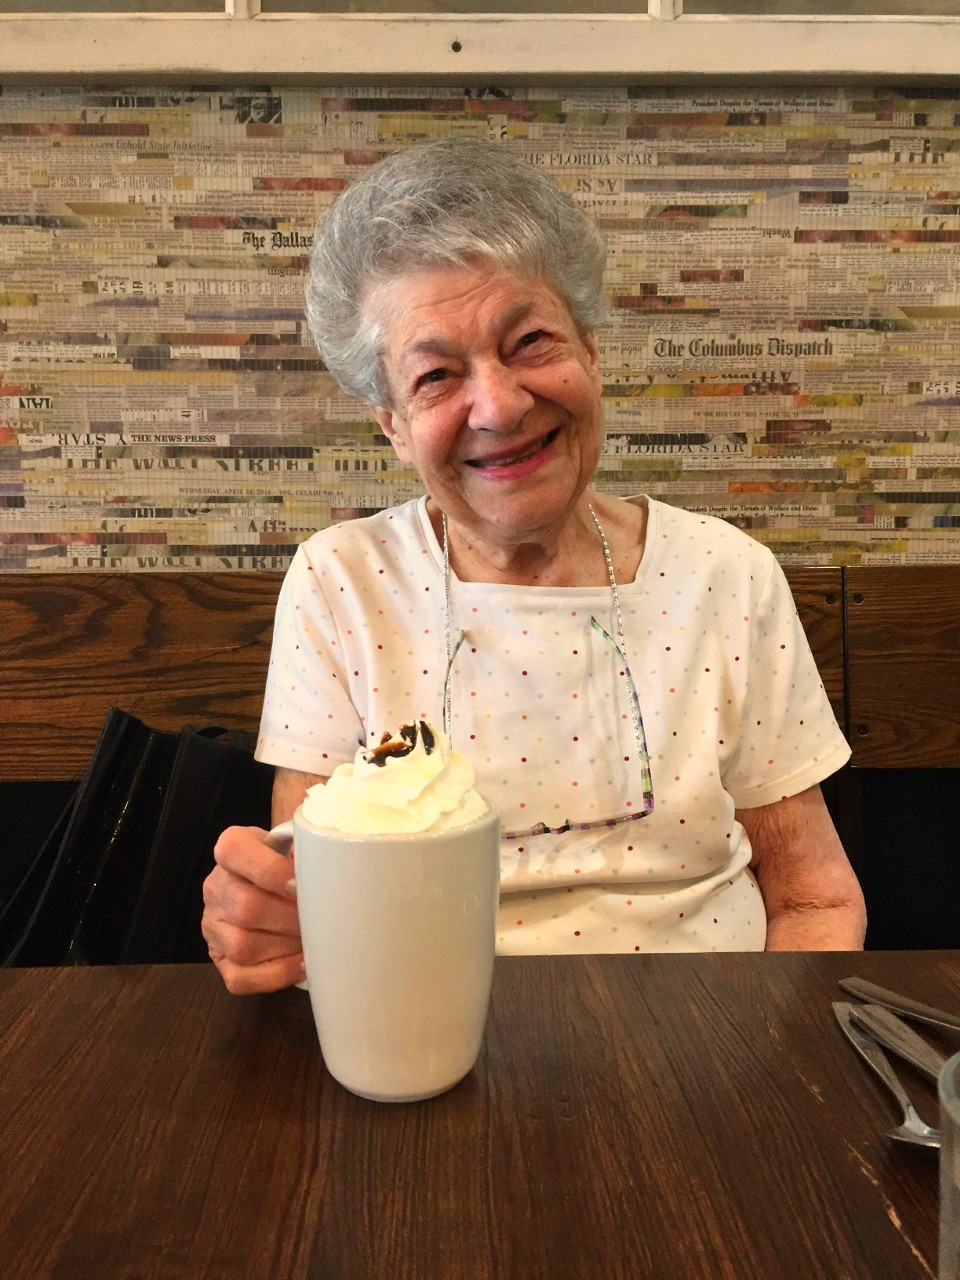 My mom having a mug of hot cocoa in 2018